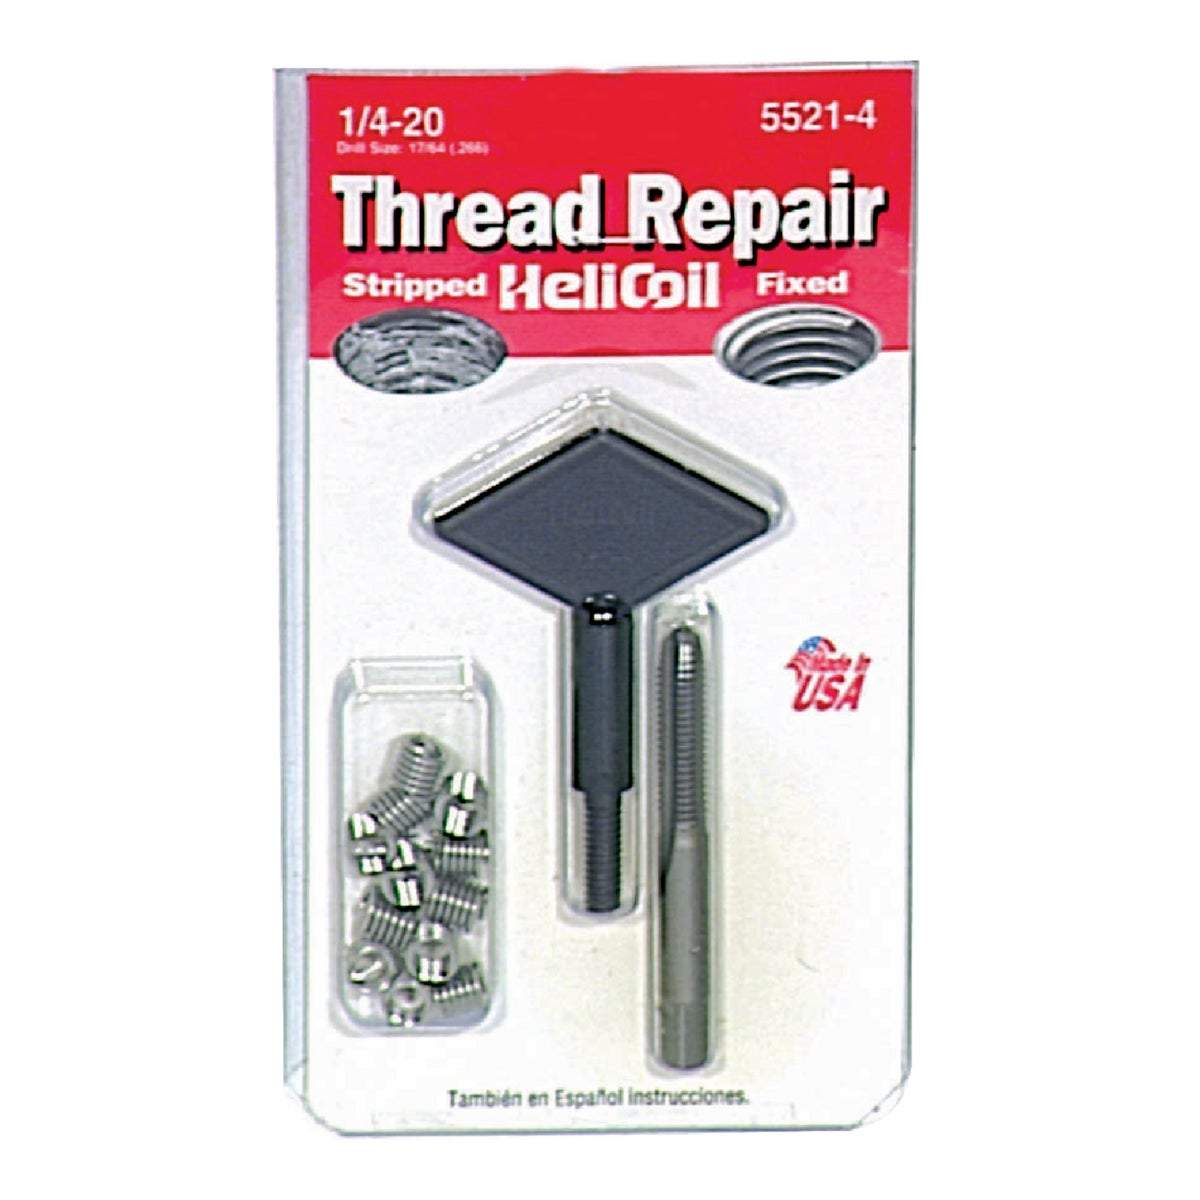 1/4X20 THREAD REPAIR KIT - 5521-4 by Helicoil Div Emhart